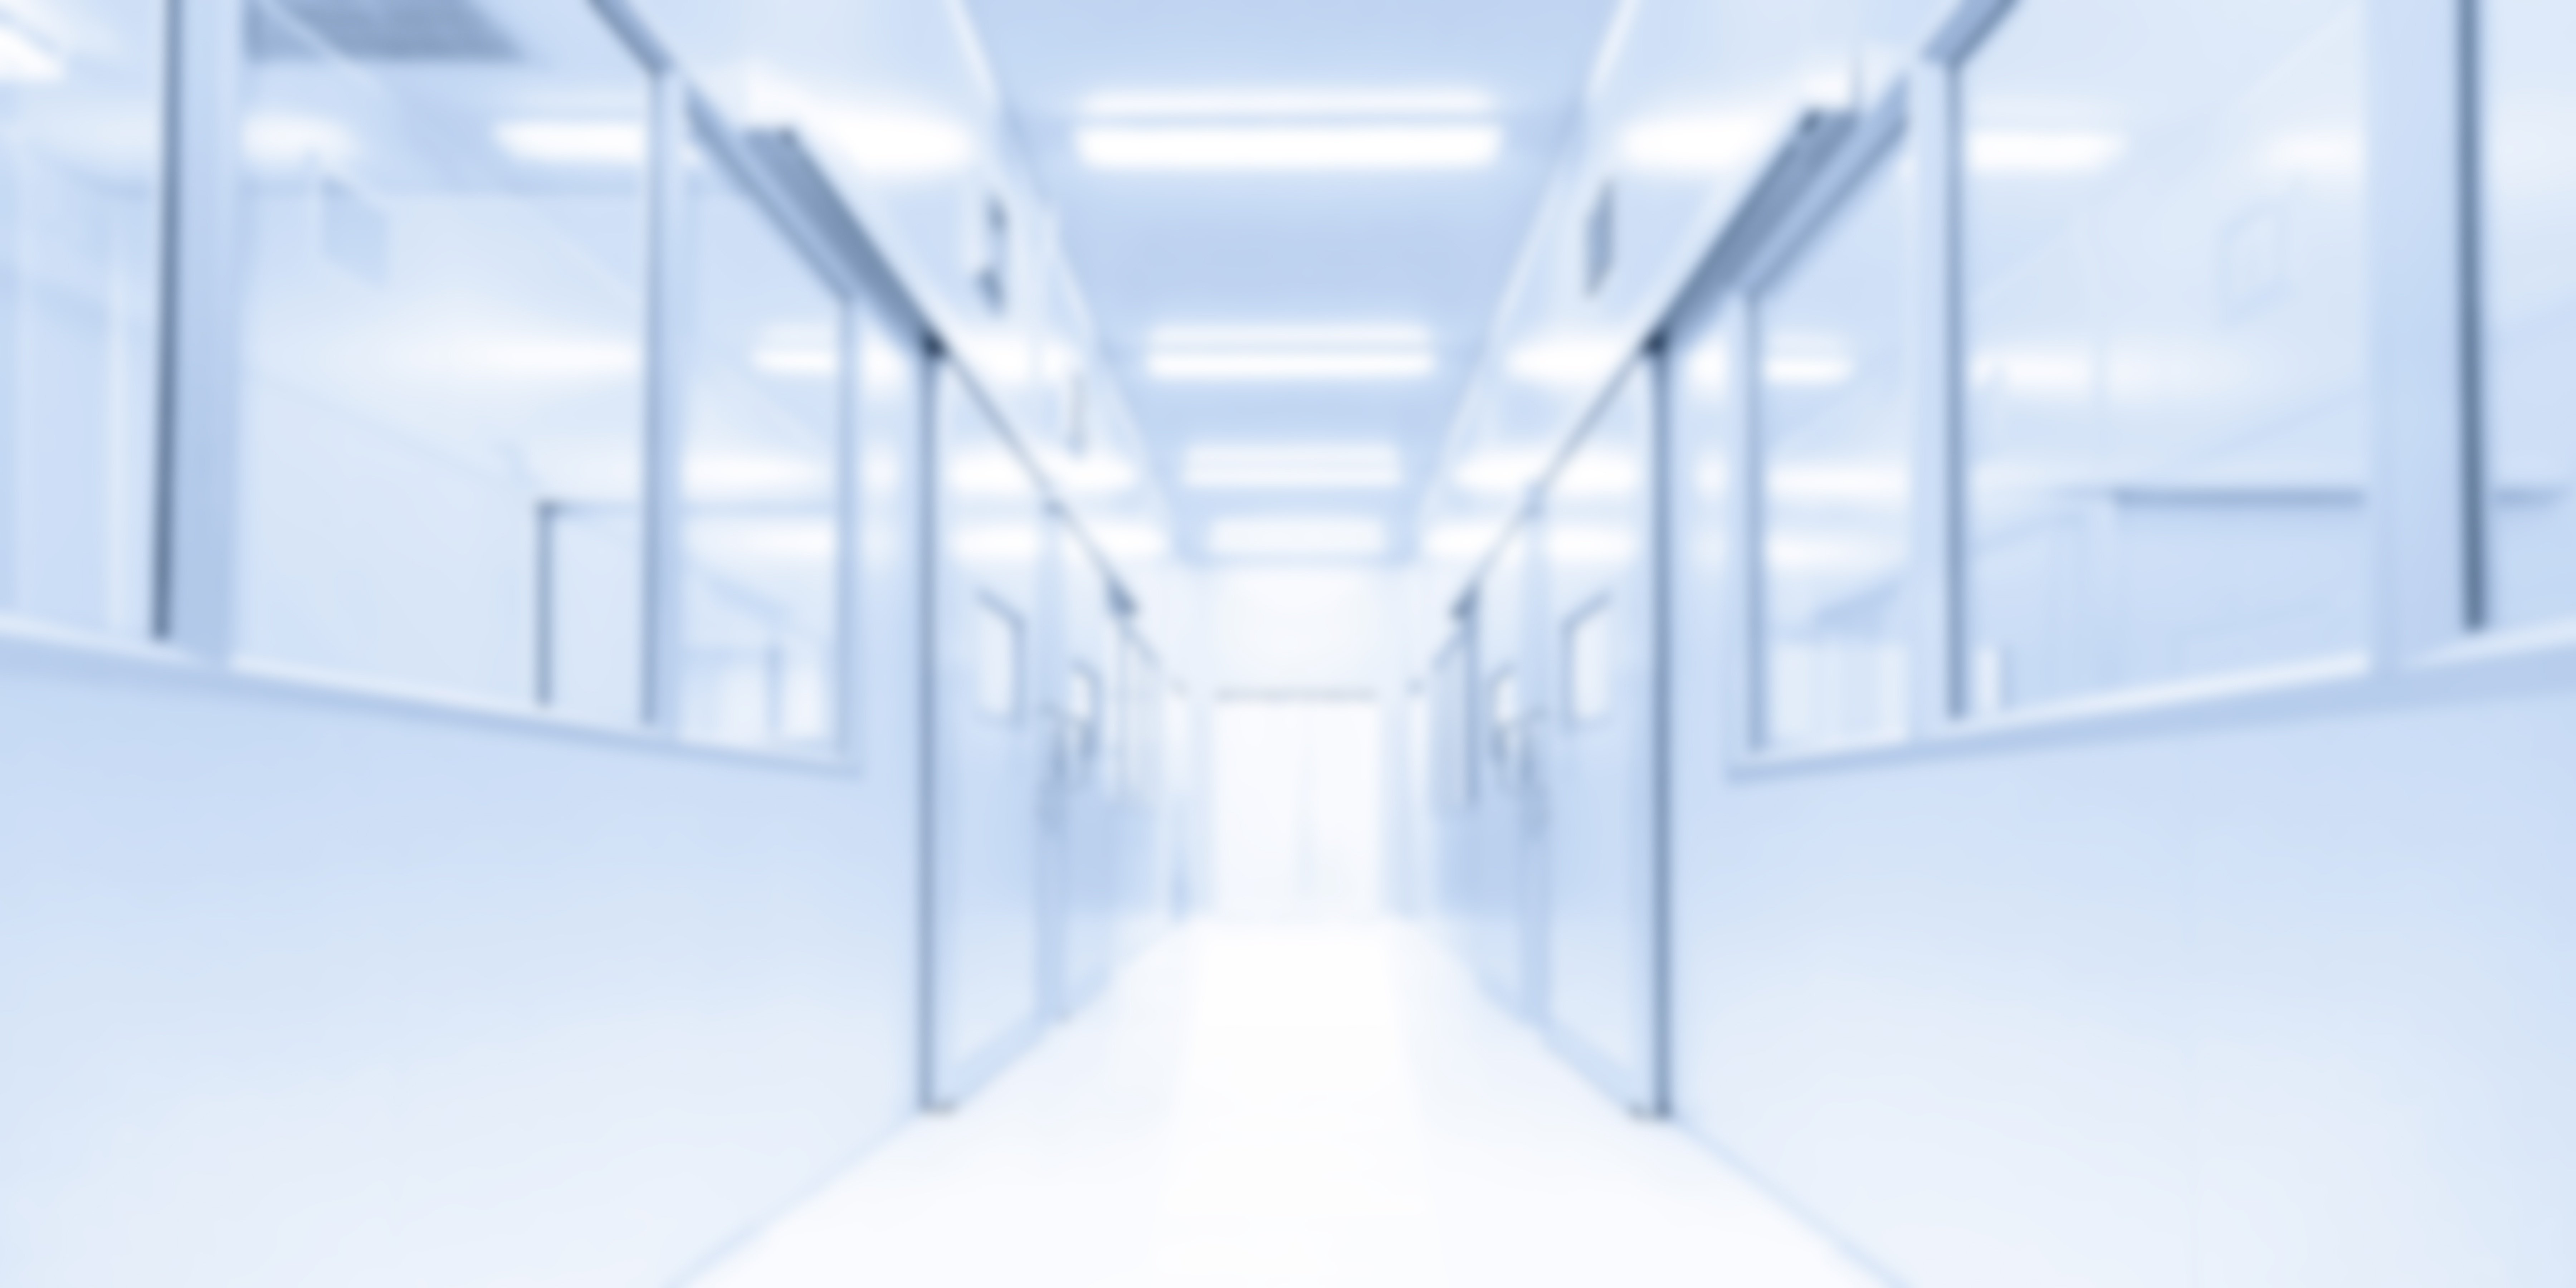 Critical Environments - Cleanroom 001 with blur-1.jpeg